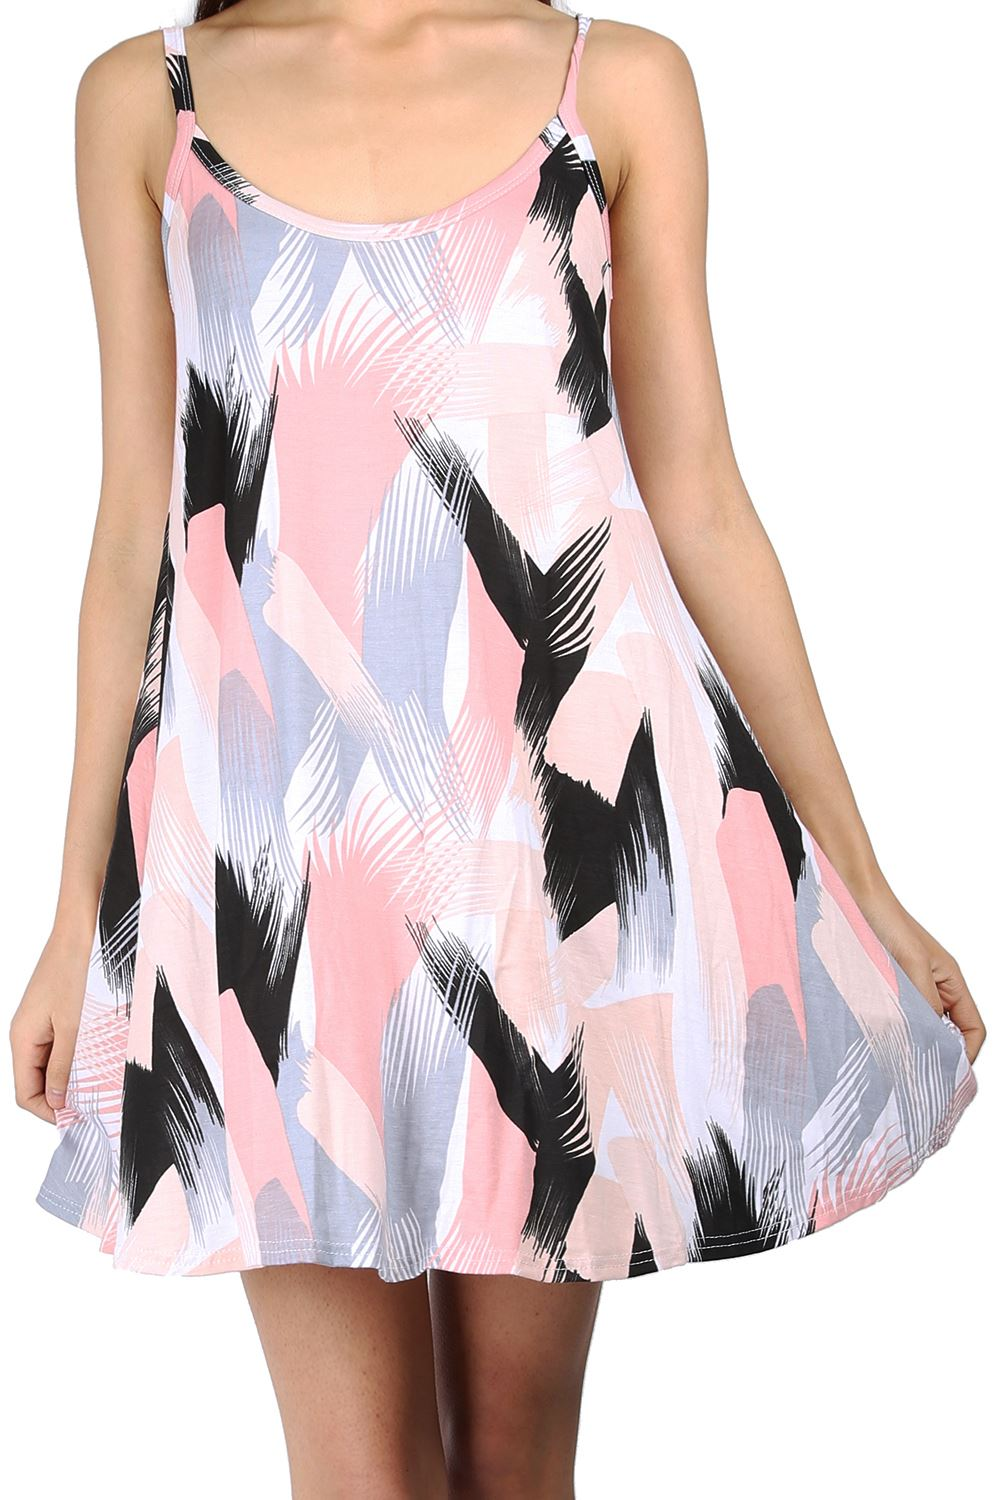 Womens Ladies Printed Strappy Sleeveless Flared Vest Swing Dress Top Plus Size